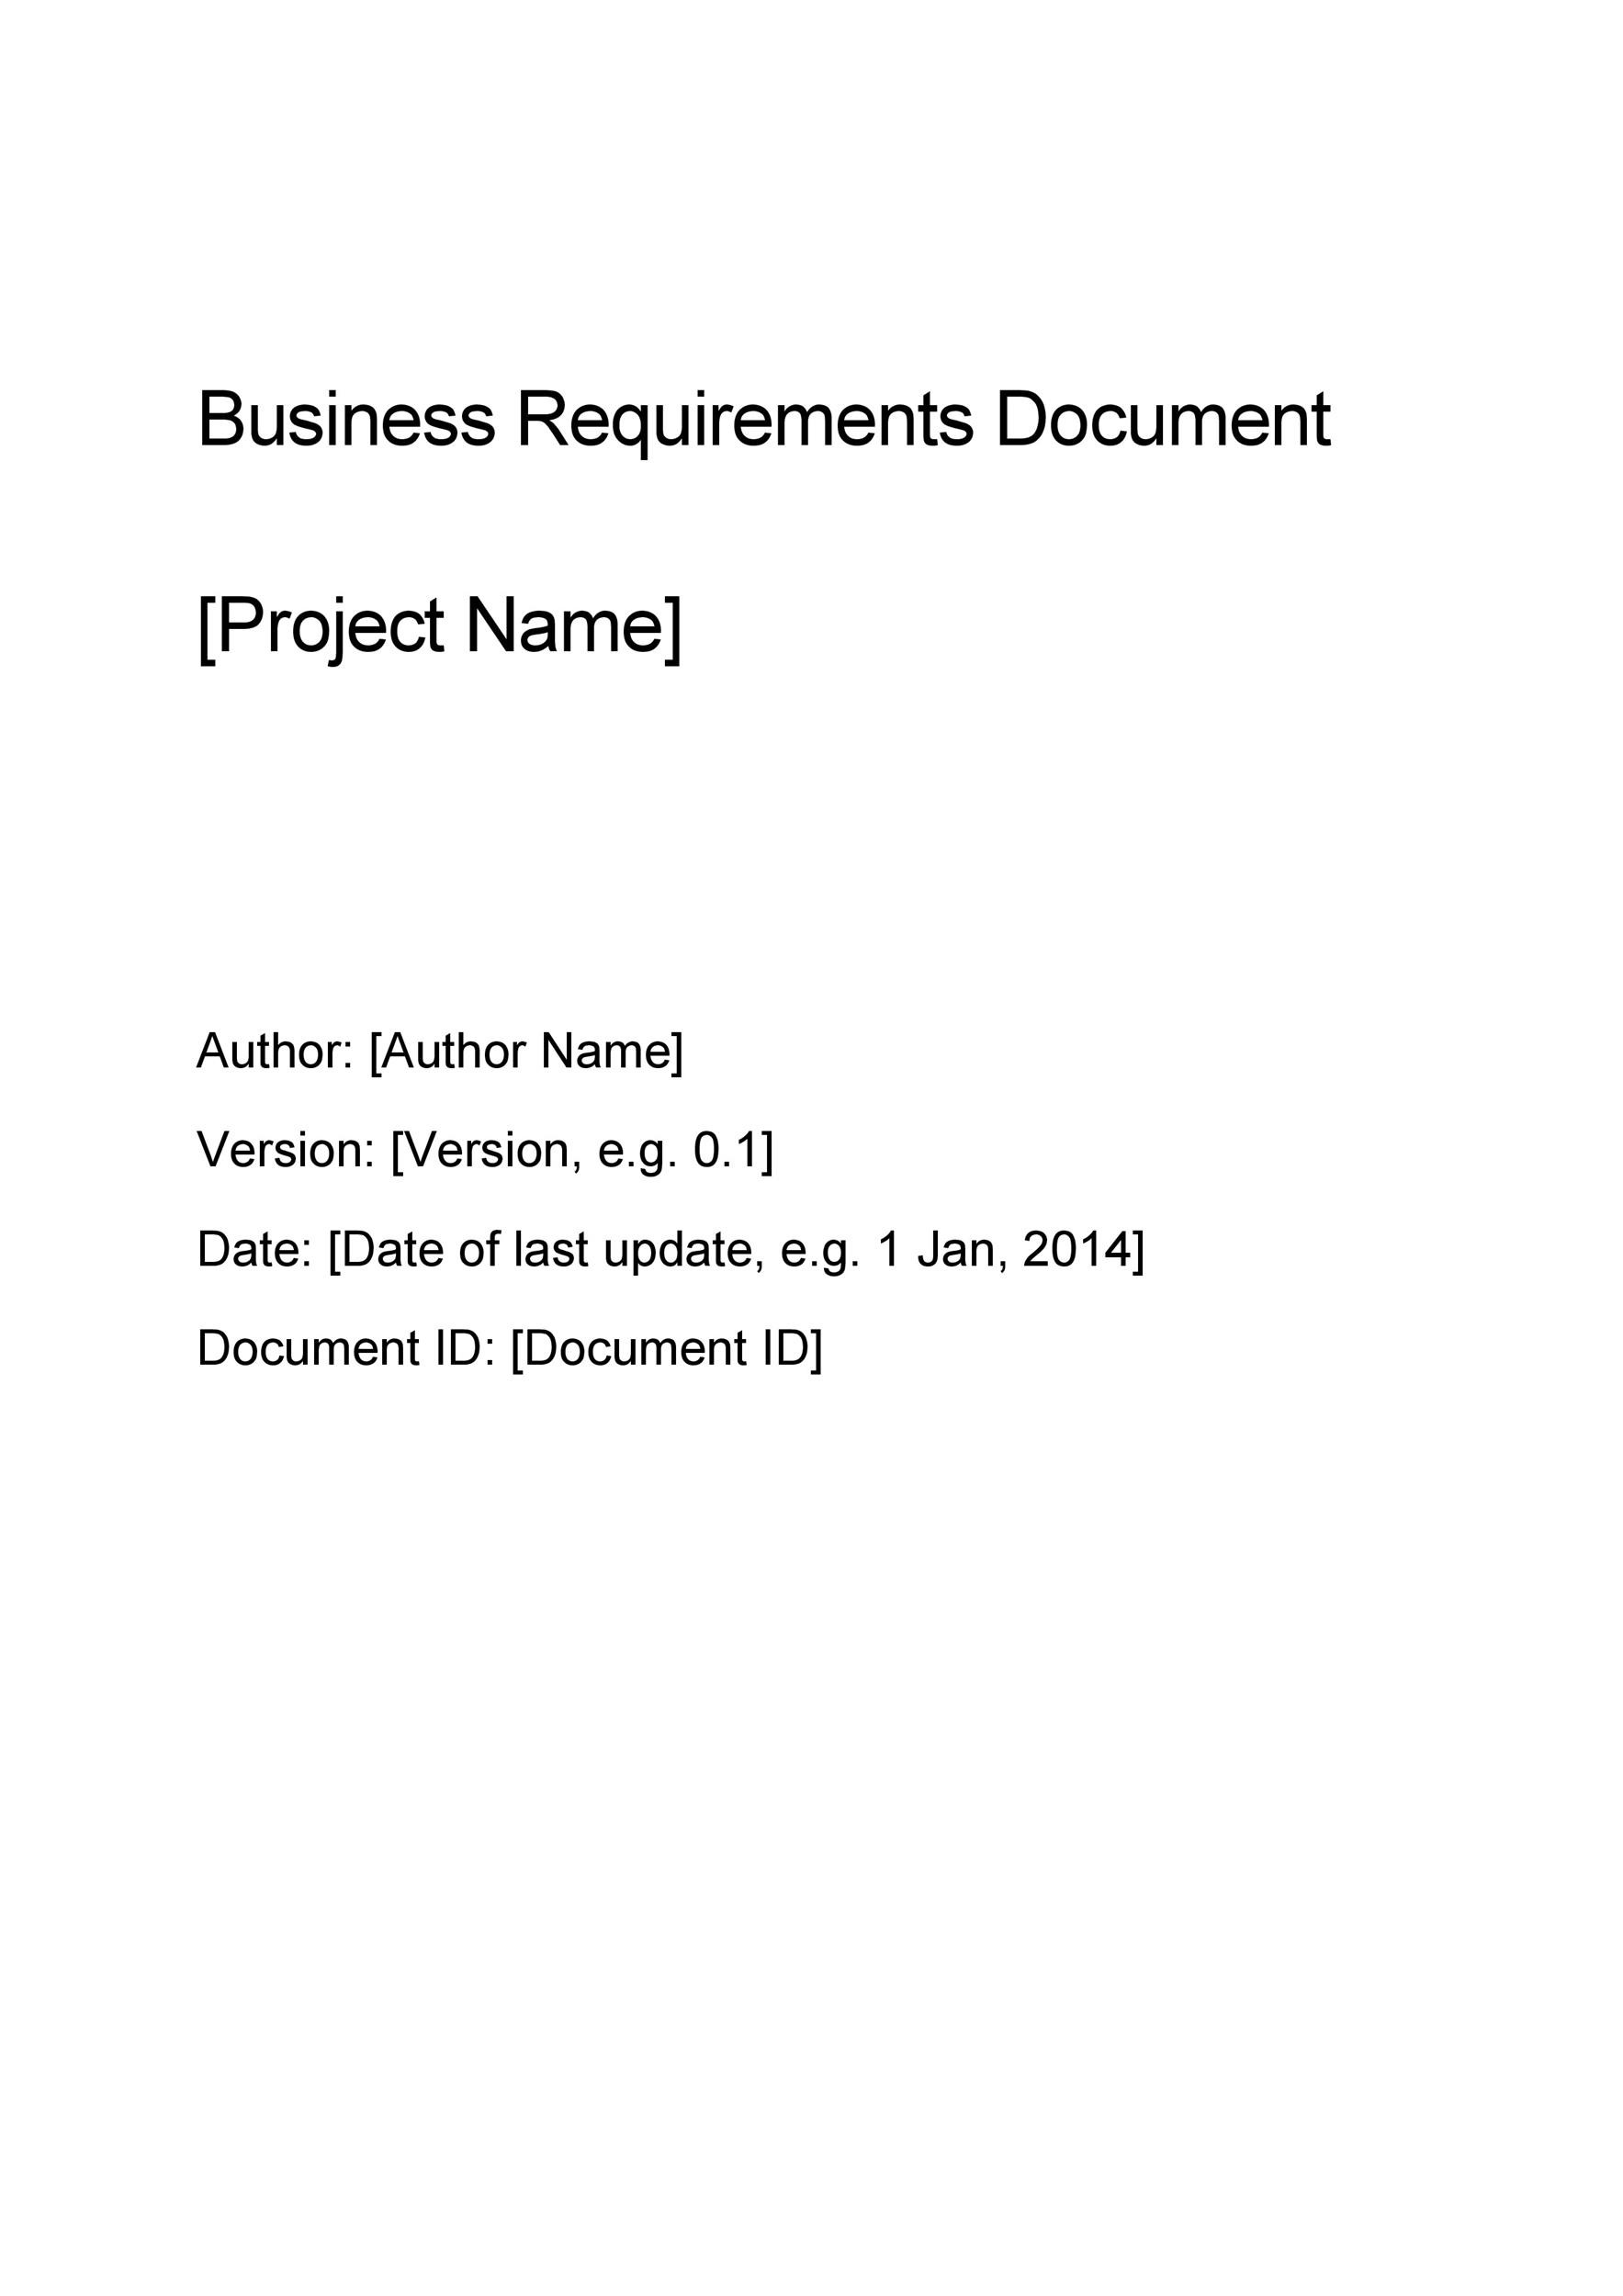 Simple Business Requirements Document Templates Template Lab - How to write business requirements document